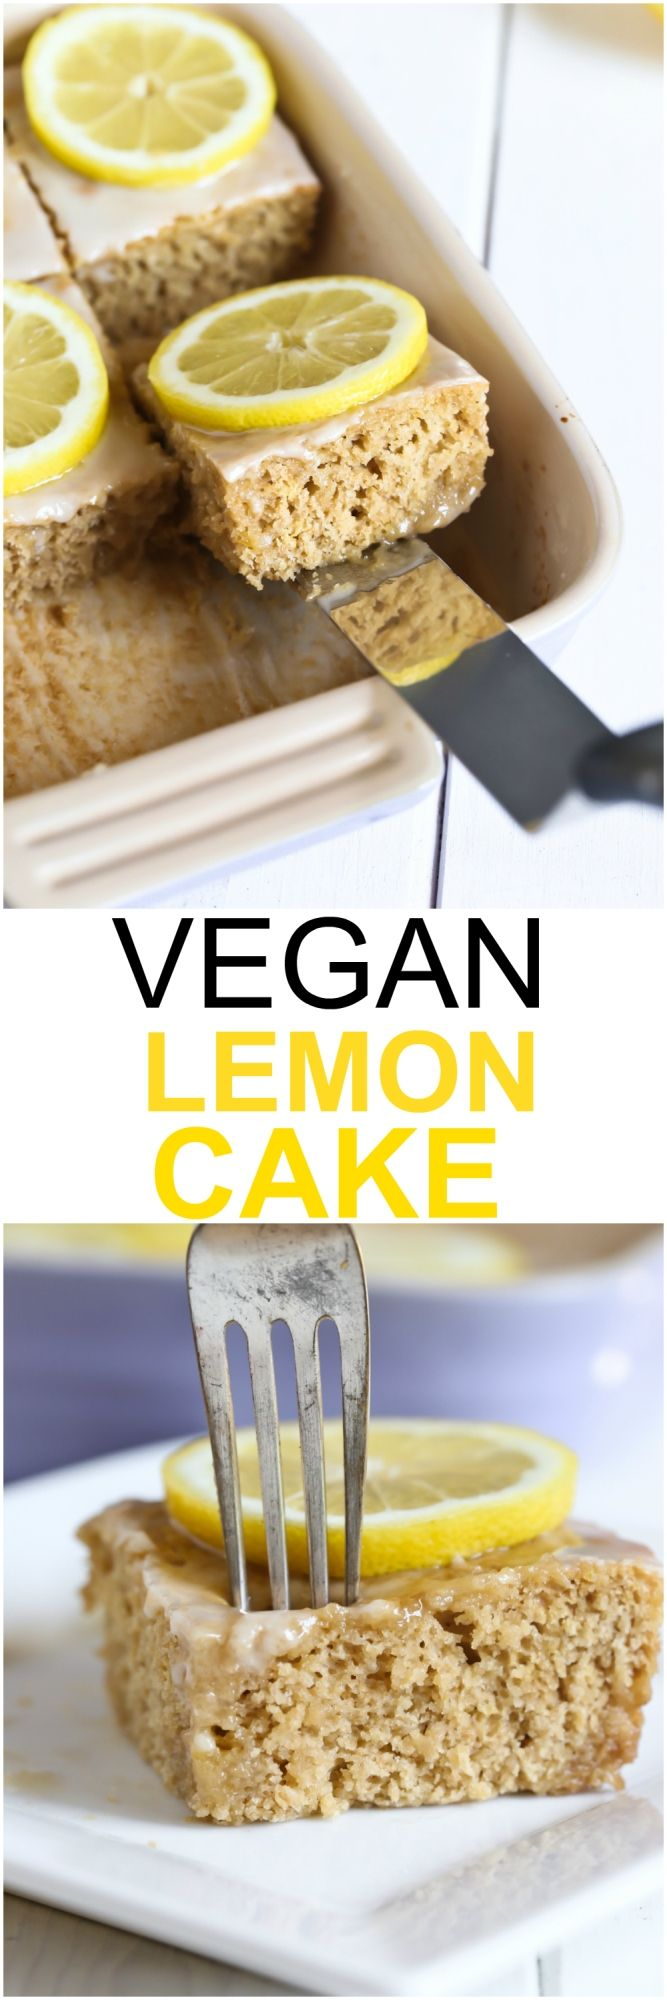 Vegan Lemon Cake made with healthy wholesome ingredients. This cake is so fresh and lemony and the perfect sponge texture. It is light, low-fat and made with only 8 ingredients! via @thevegan8